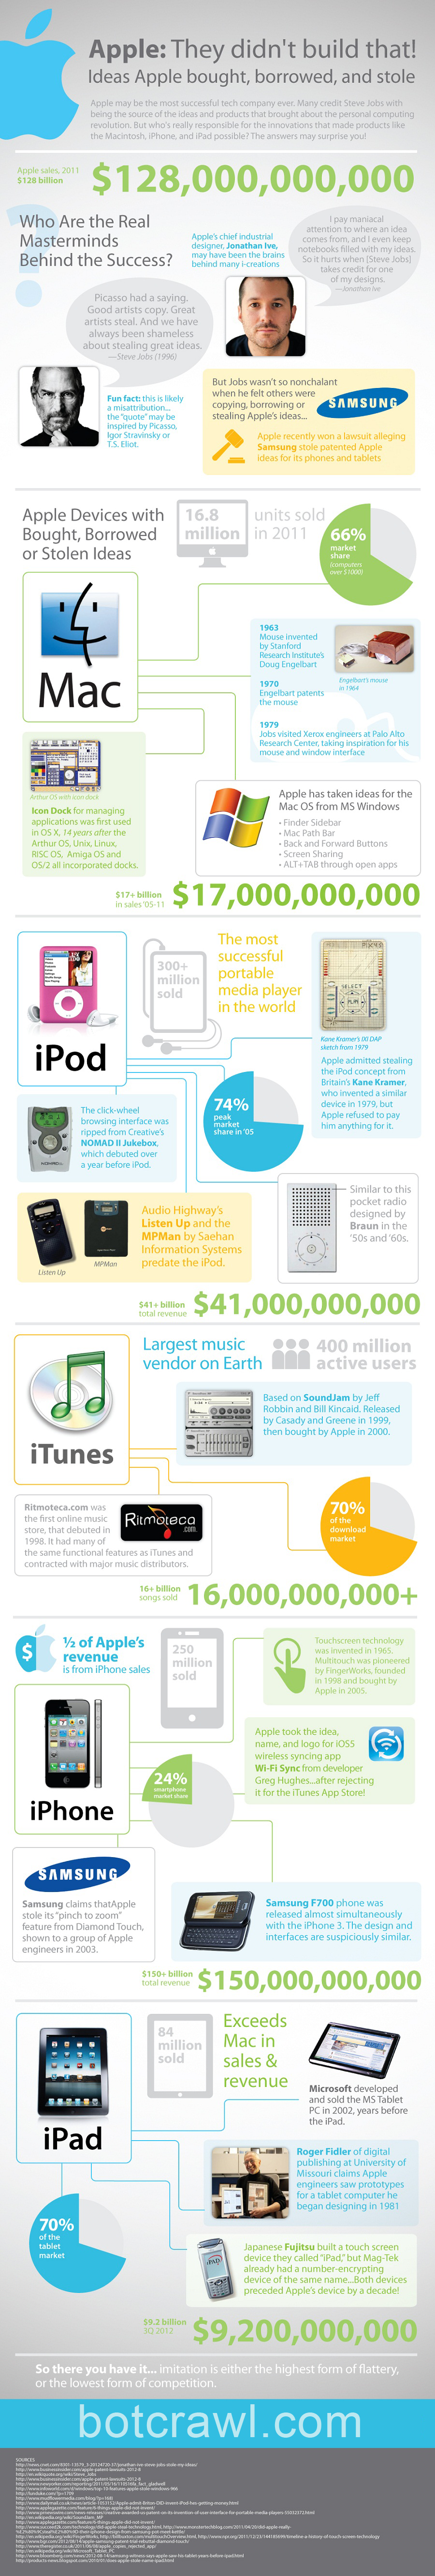 Ideas Apple Bought, Borrowed, And Stole (Infographic)